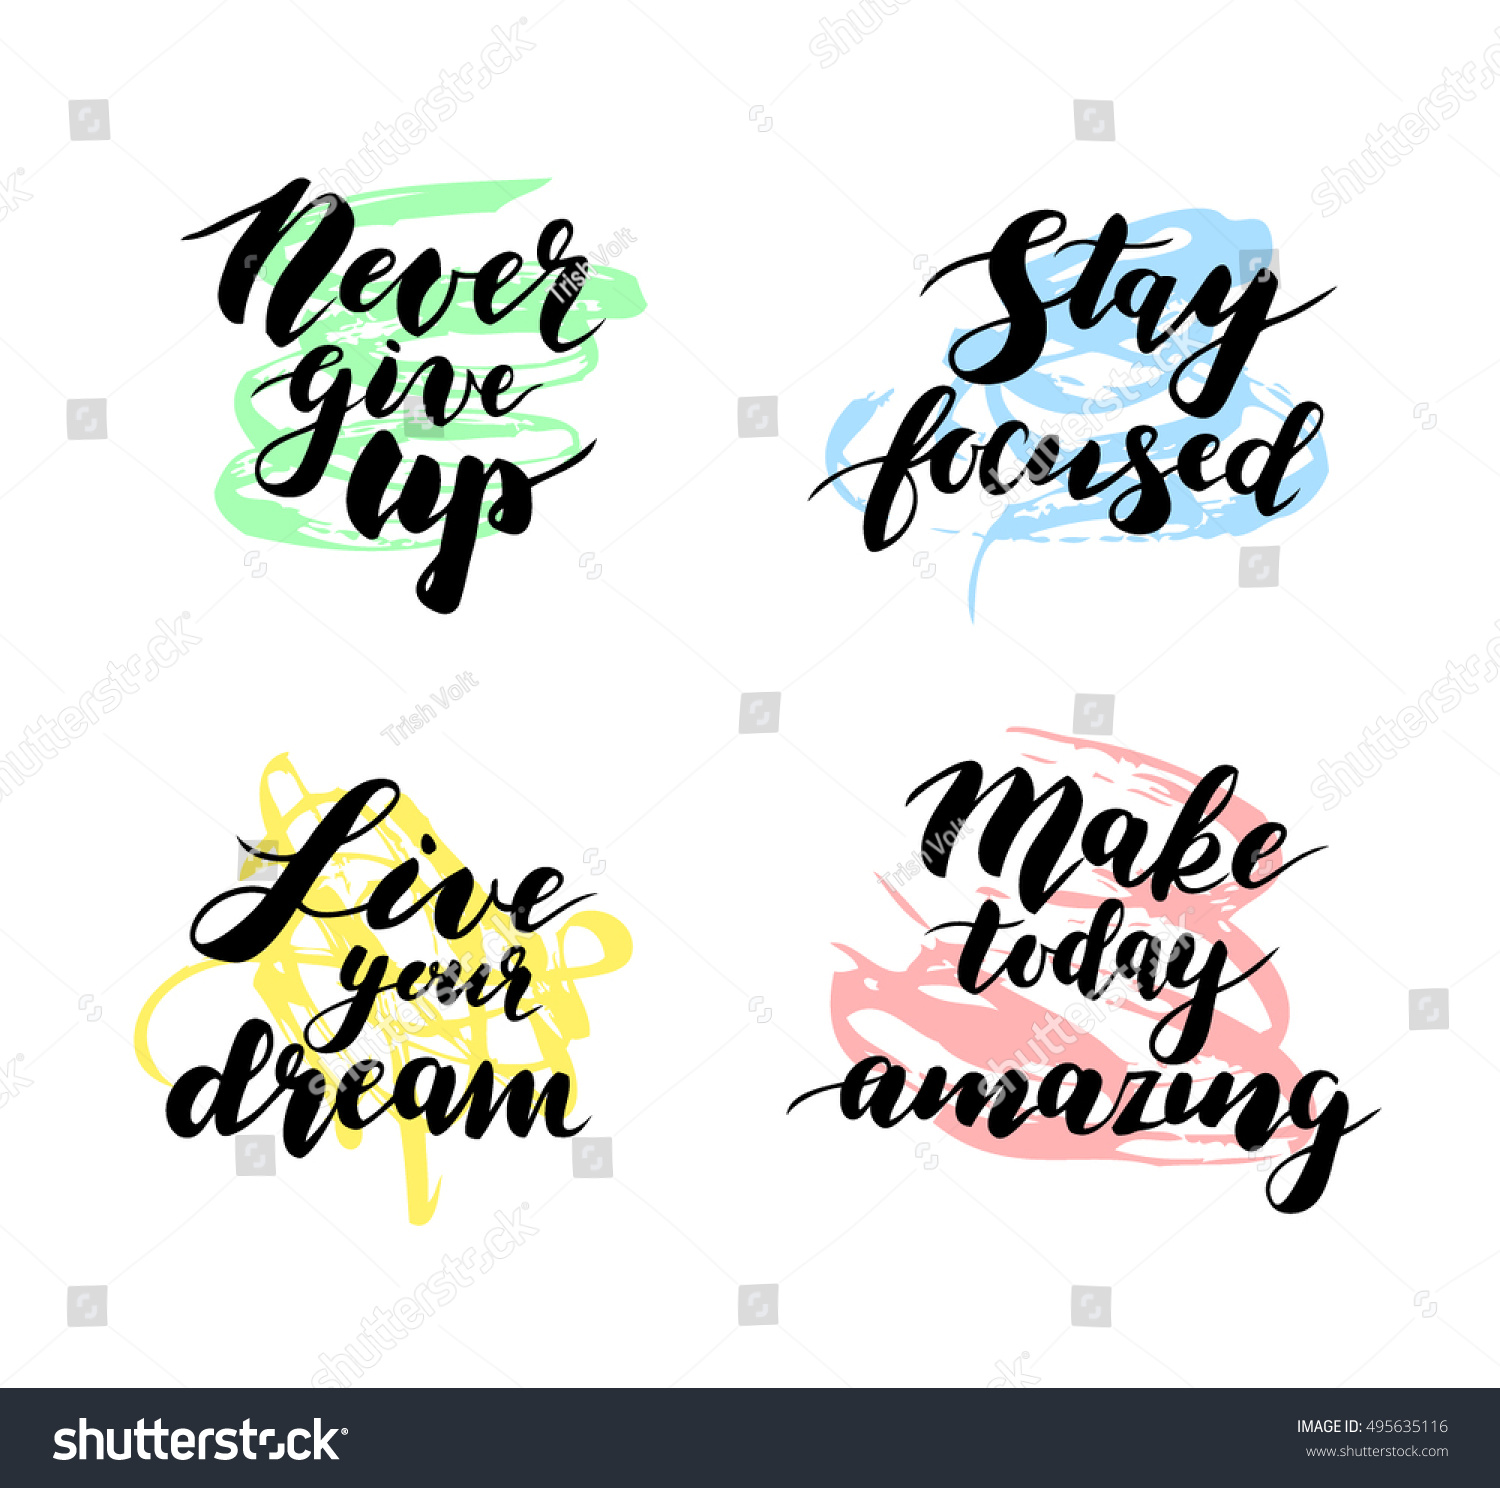 Simple Inspirational Quotes Pleasing Four Motivational Inspirational Quotes Modern Calligraphy Stock